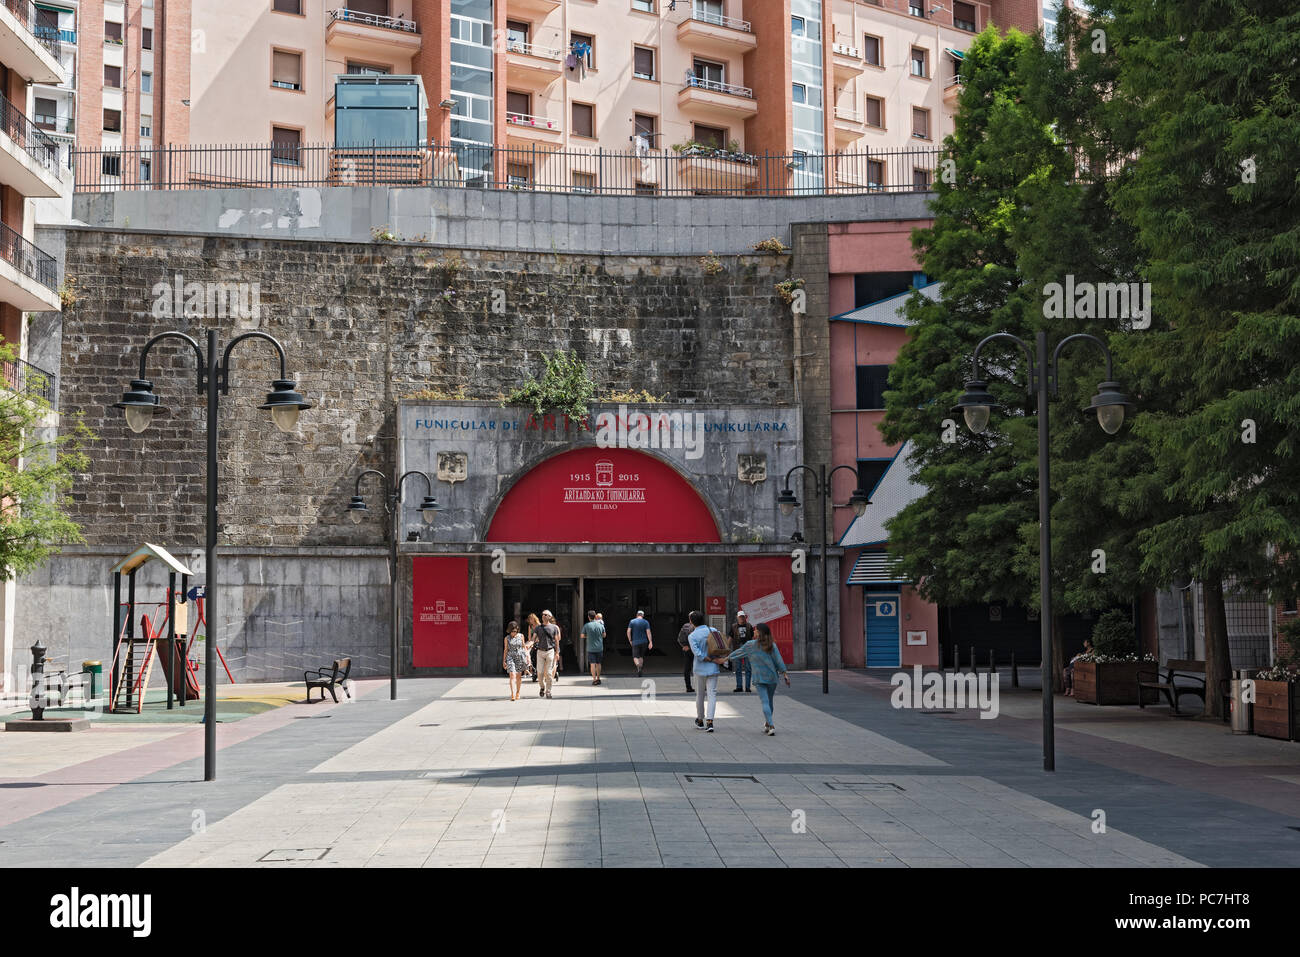 input and output of the artxanda funicular, bilbao, spain. - Stock Image